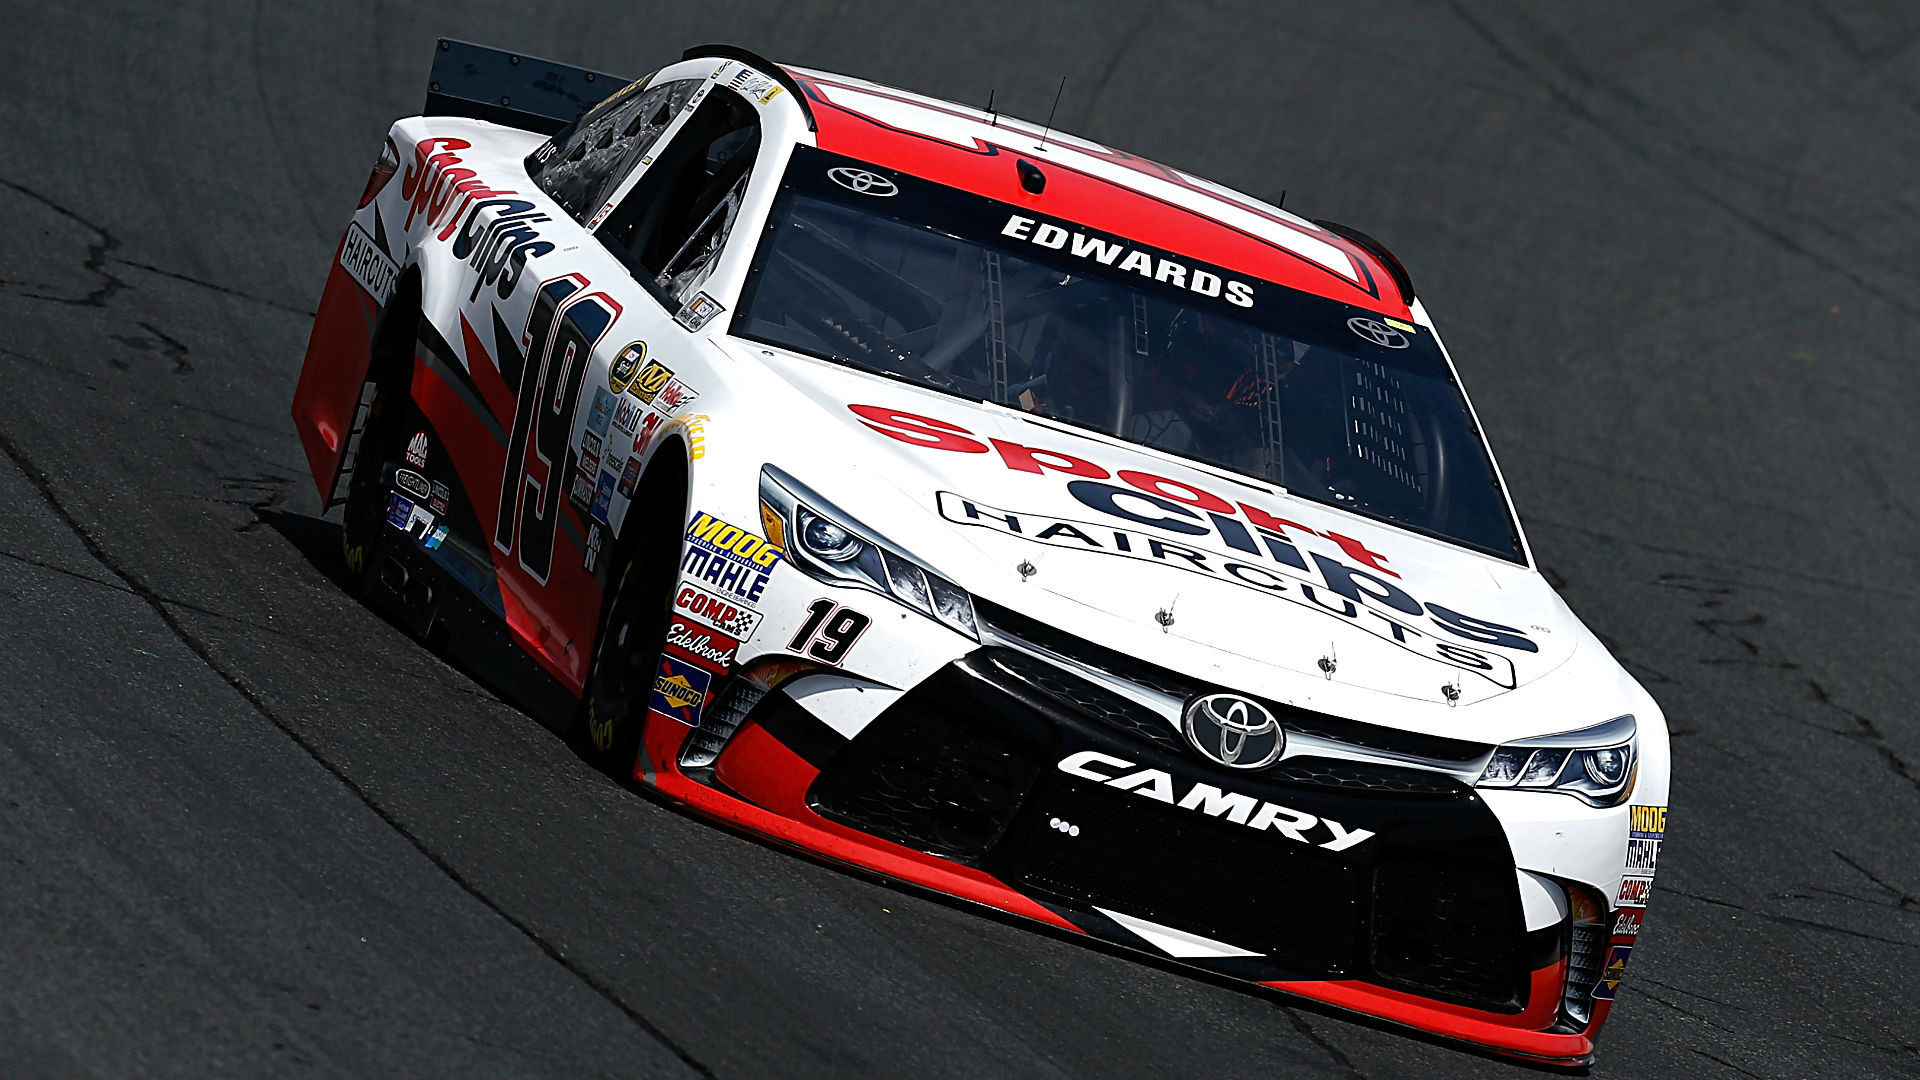 Res: 1920x1080, Carl Edwards on pole for NASCAR at New Hampshire | NASCAR | Sporting News